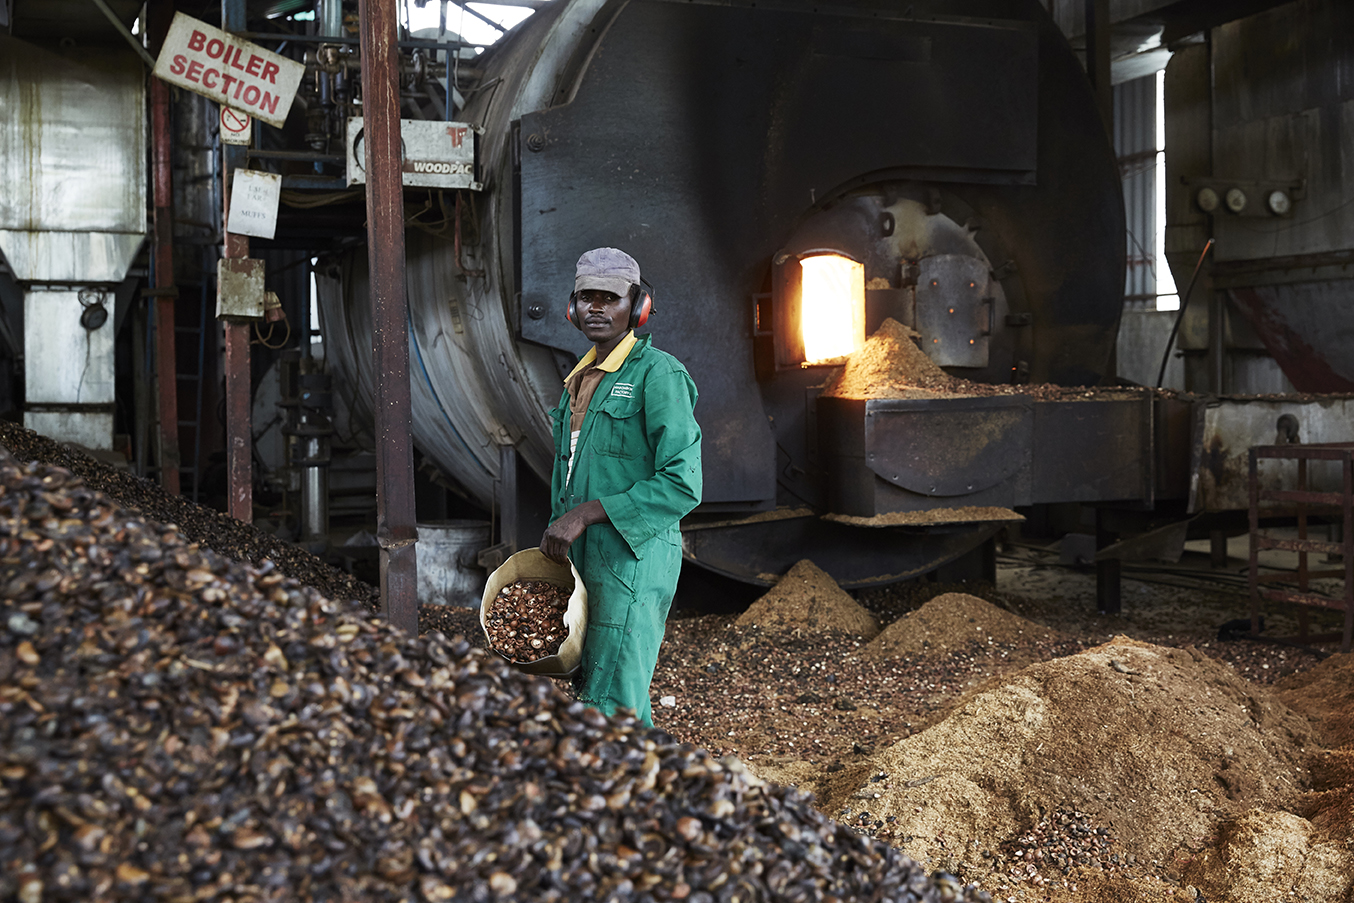 A factory worker fuels the boilers with green fuel.  Makomboki Tea Factory in Kenya has taken climate change mitigation measures to reduce the amount of firewood used to fuel the boilers. It now uses cheaper greener fuel made from biomass briquettes along with sawdust and cashew and macadamia nut husks.